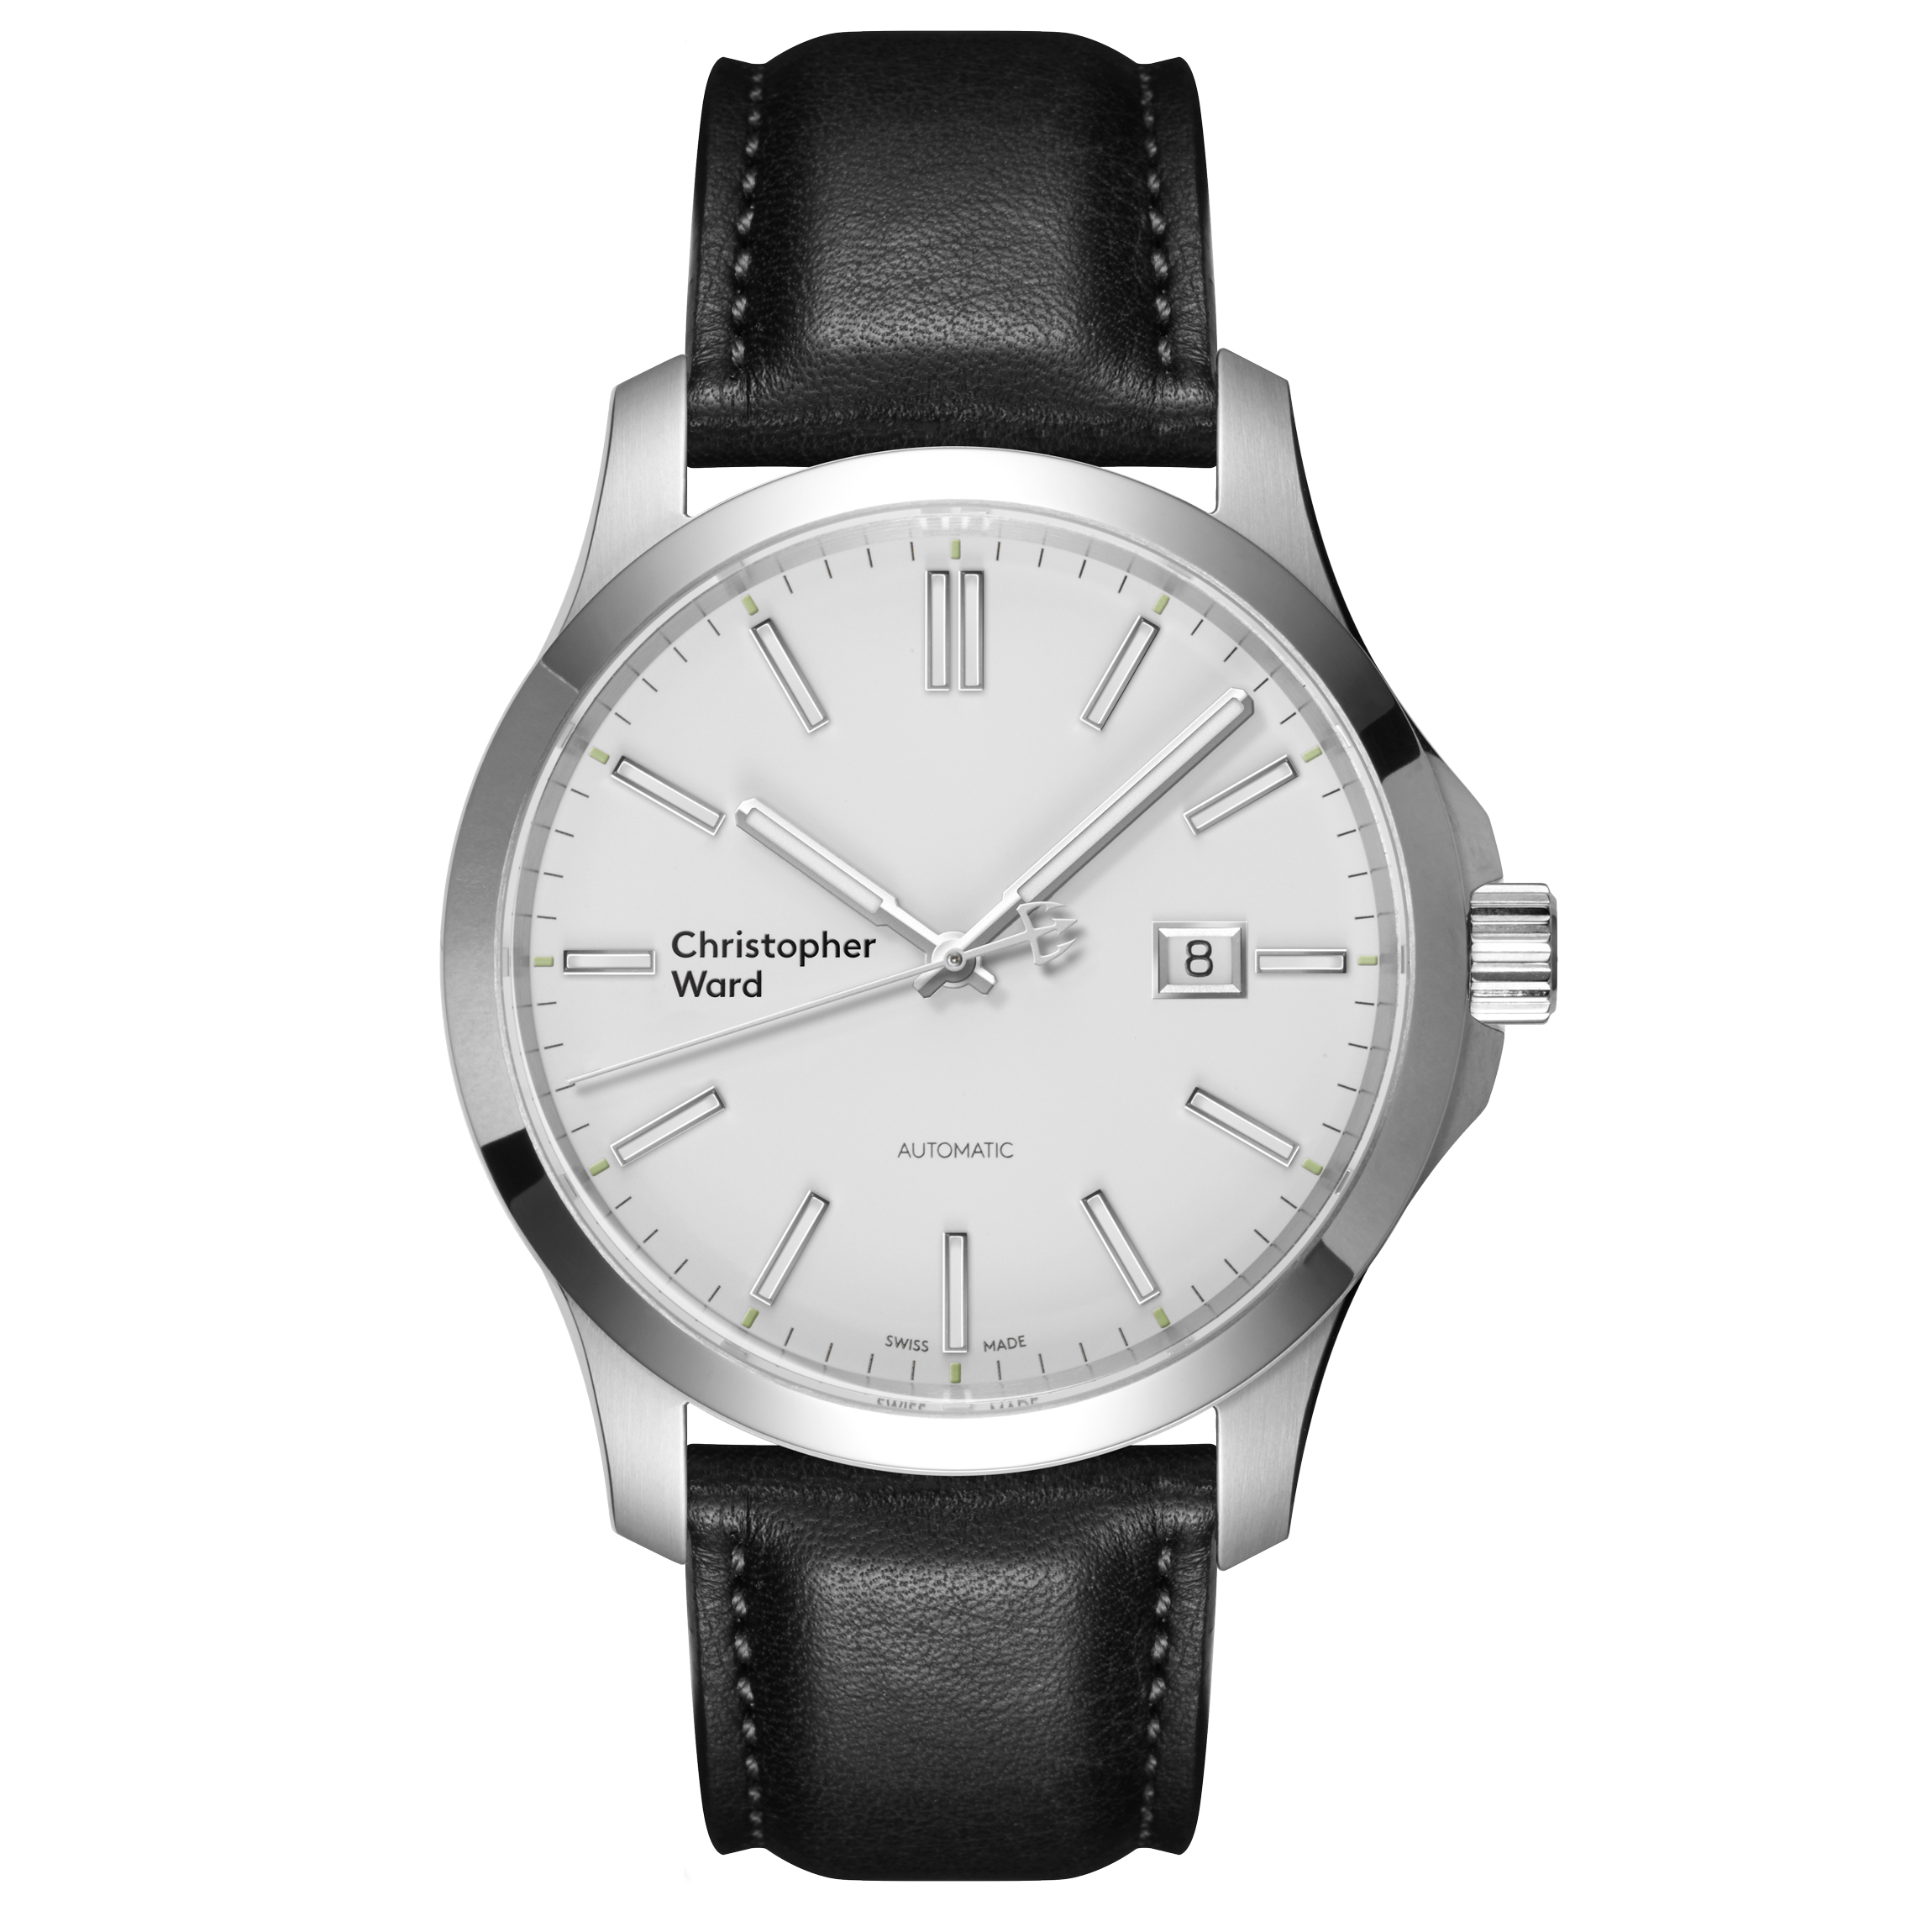 CW C65 Trident Classic Circle 4.png